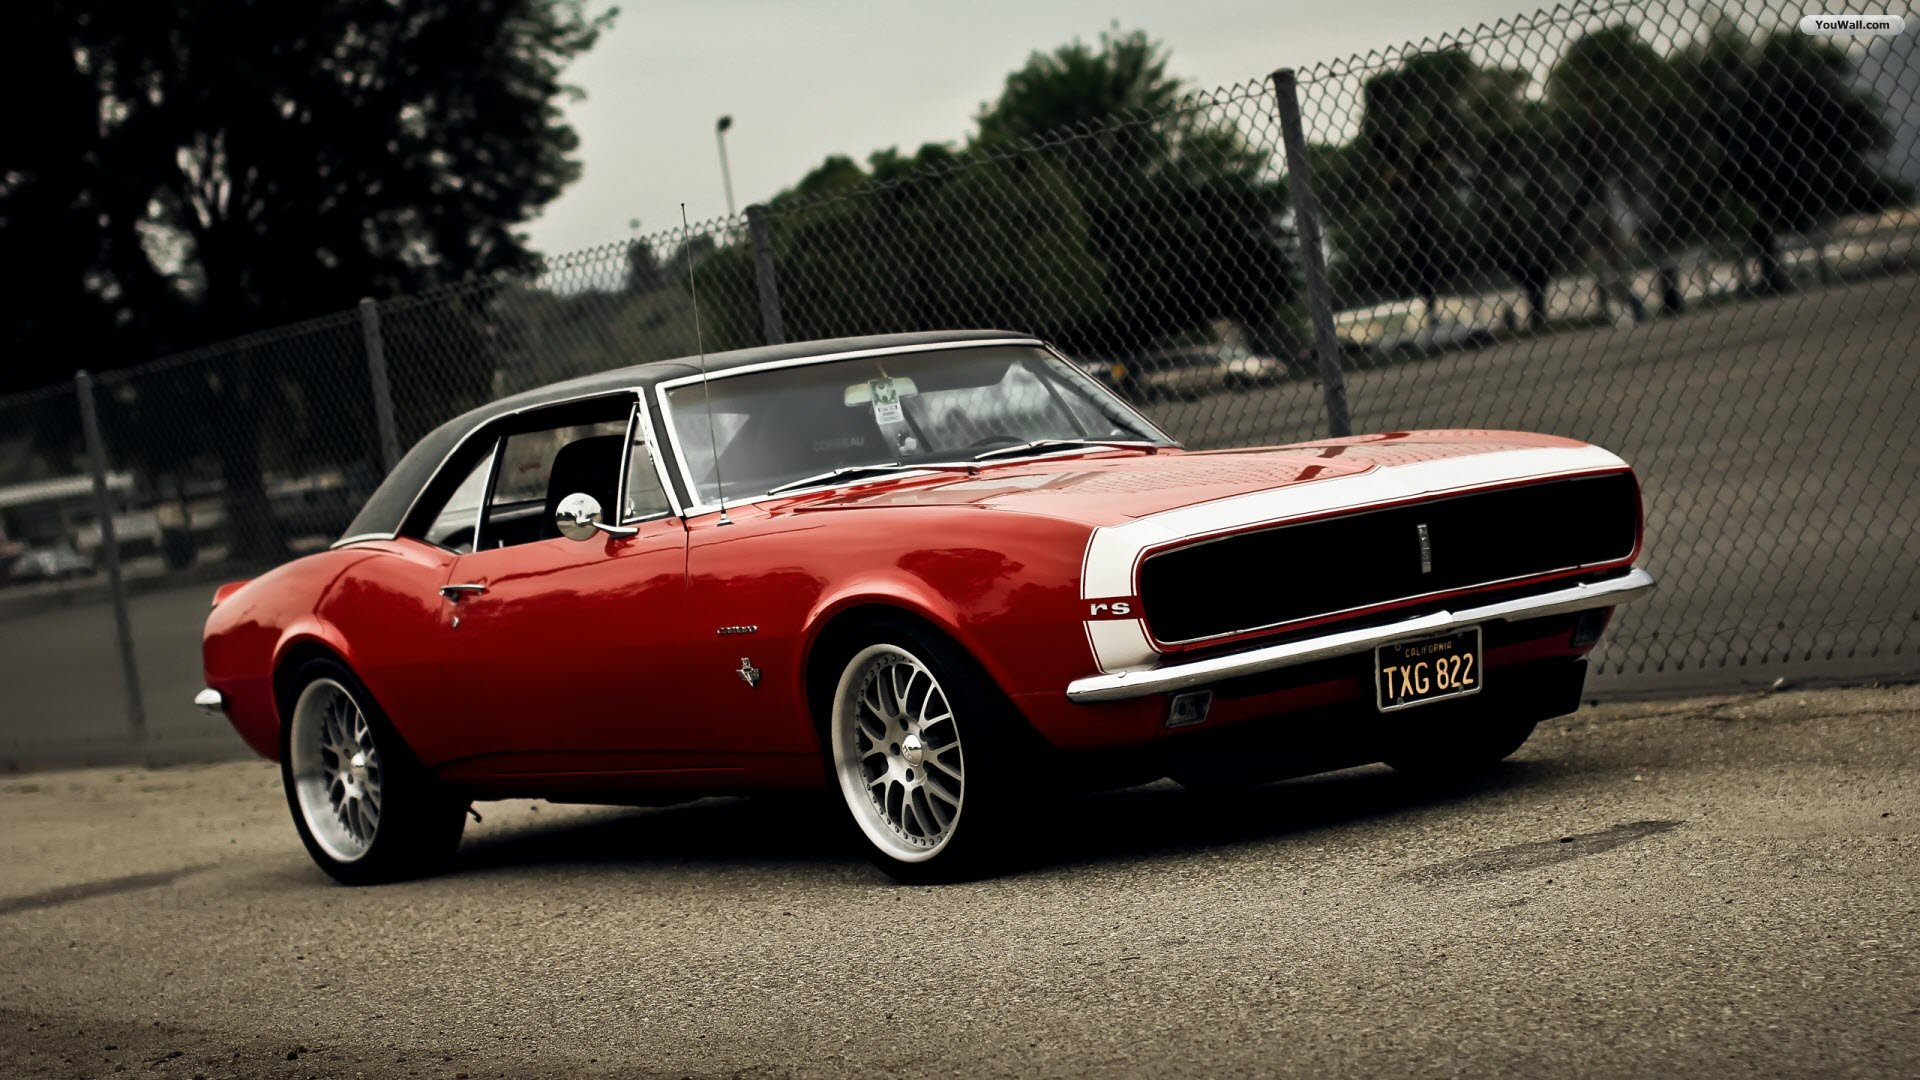 The Top 40 Classic Muscle Cars in History, Ranked - Page 38 of 41